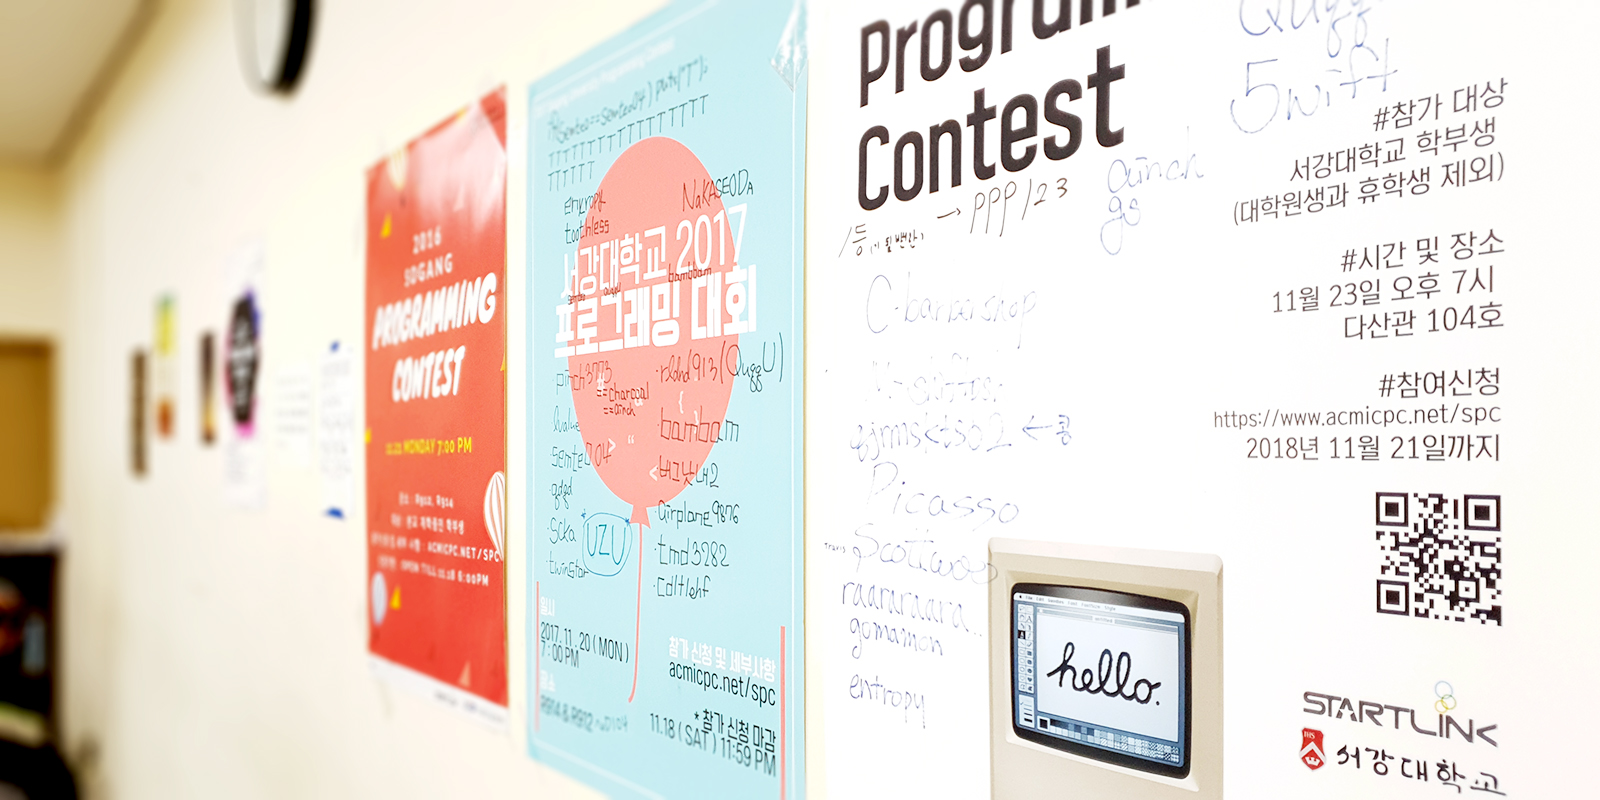 Sogang Programming Contest posters